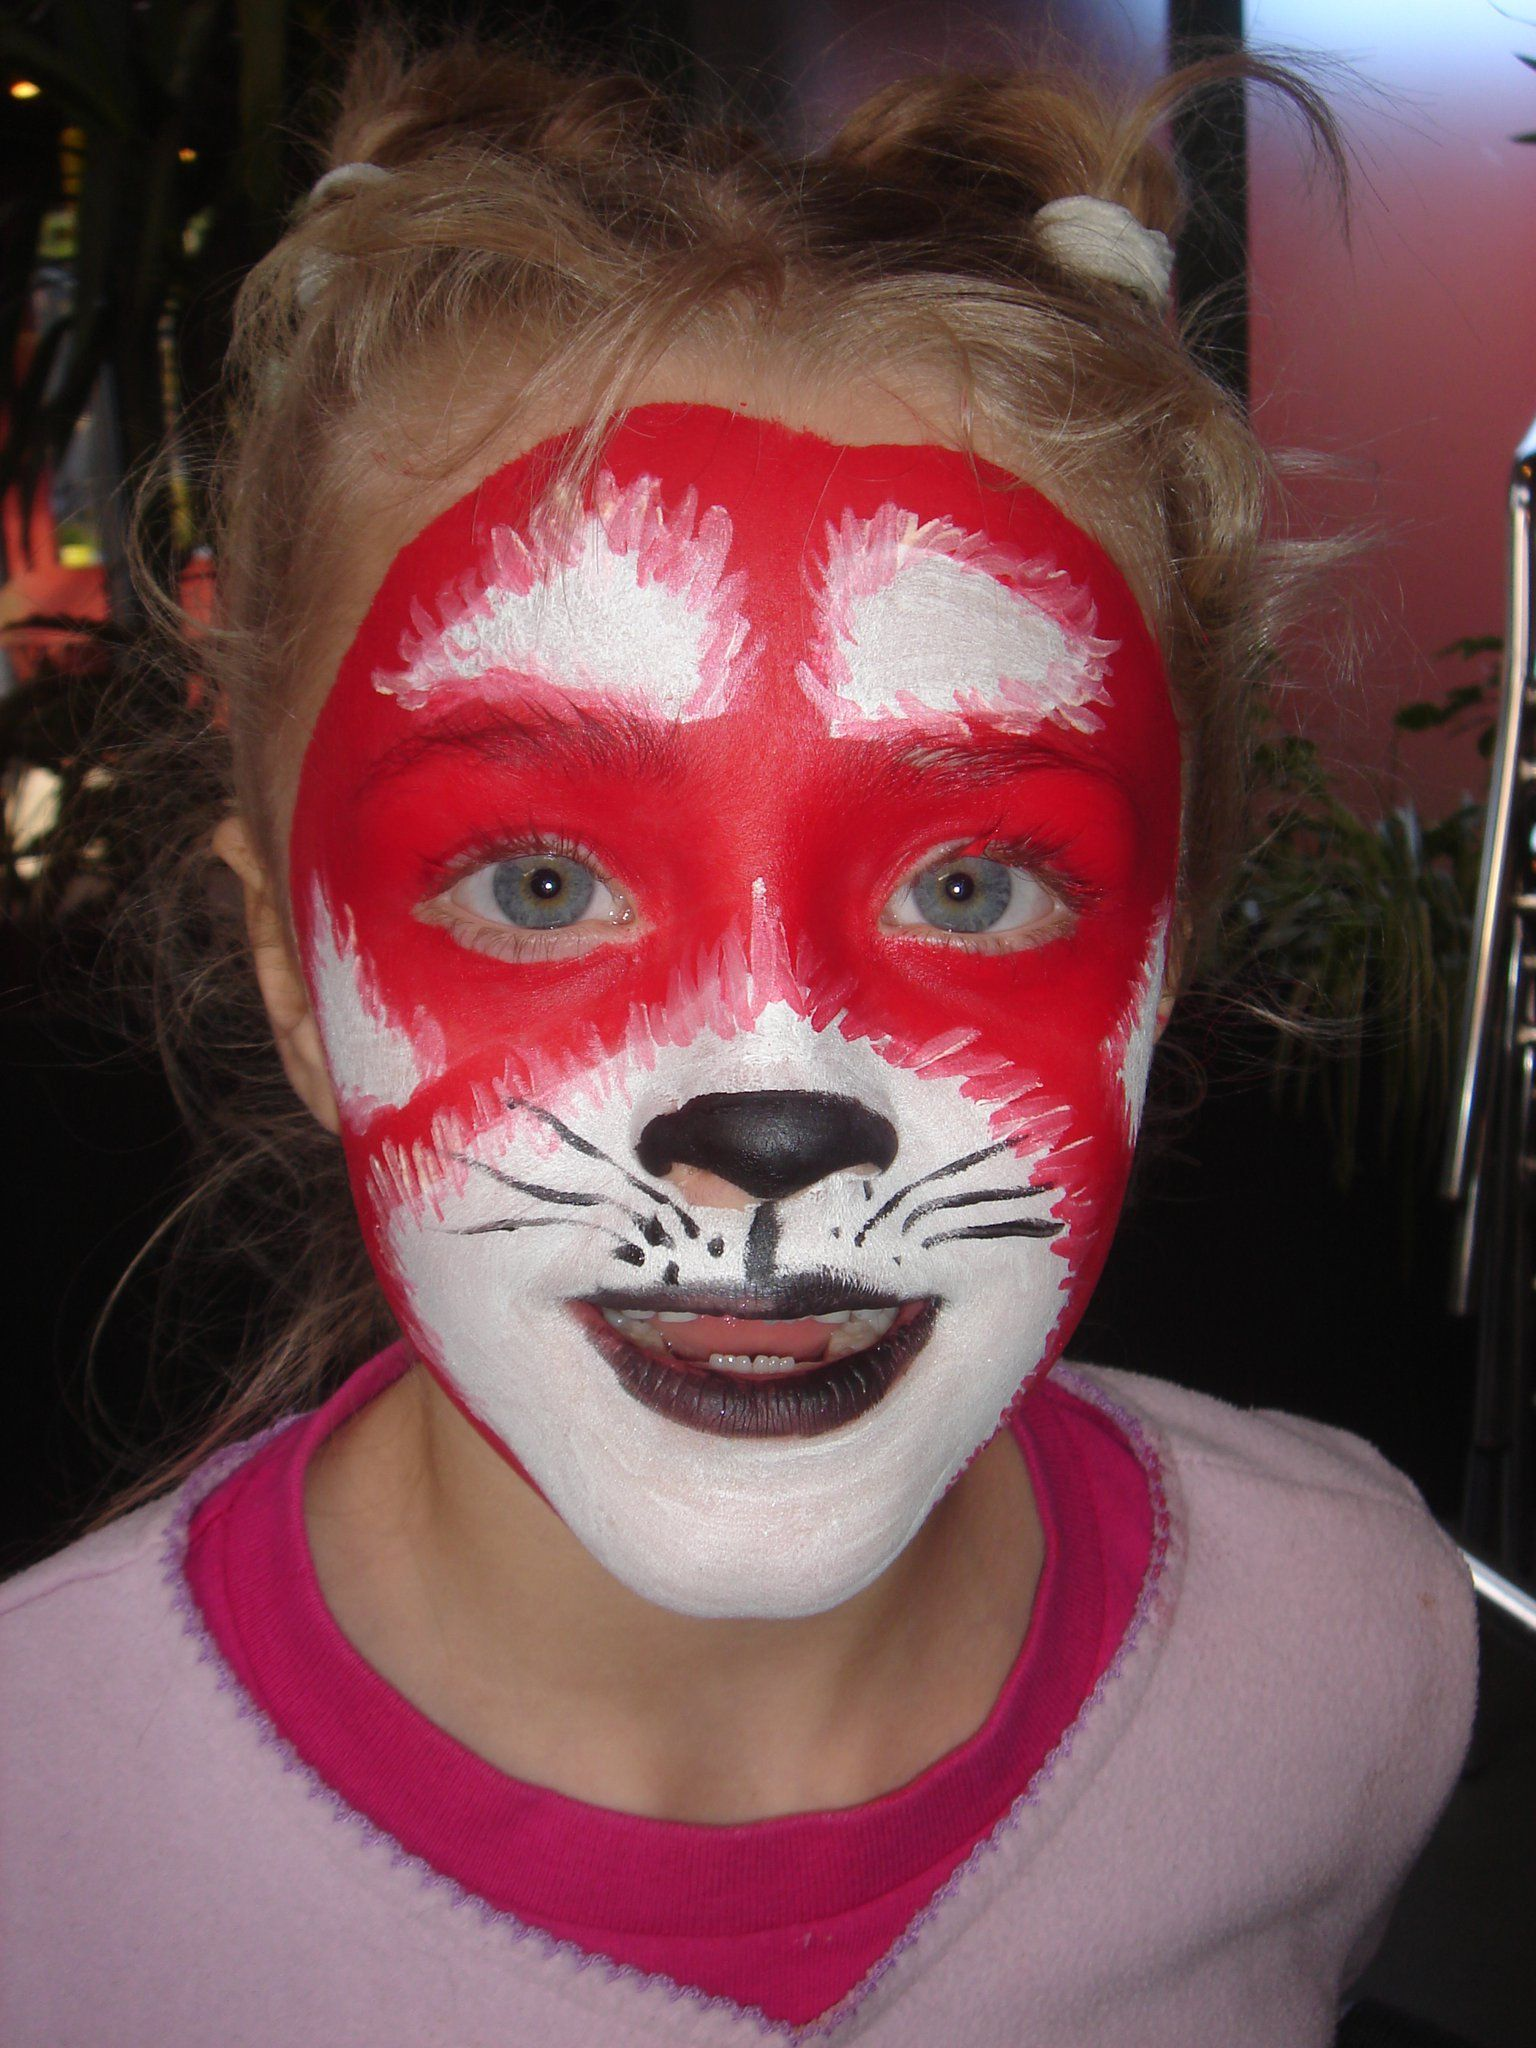 face painting red panda - Google Search | Painting, Red ...